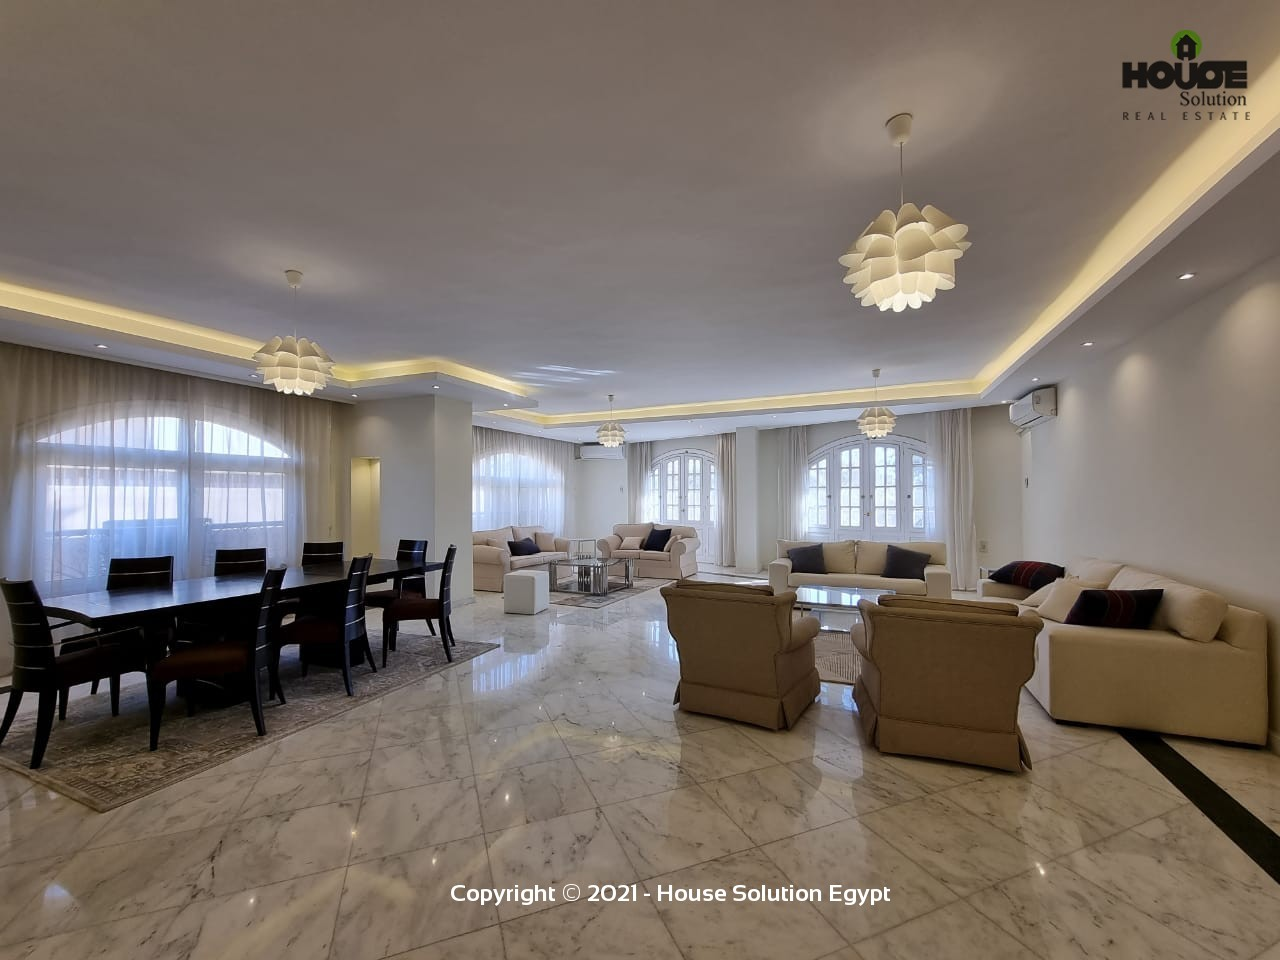 Ultra-Modern Furnished Apartment For Rent In Sarayat El Maadi - 5020 Featured Image